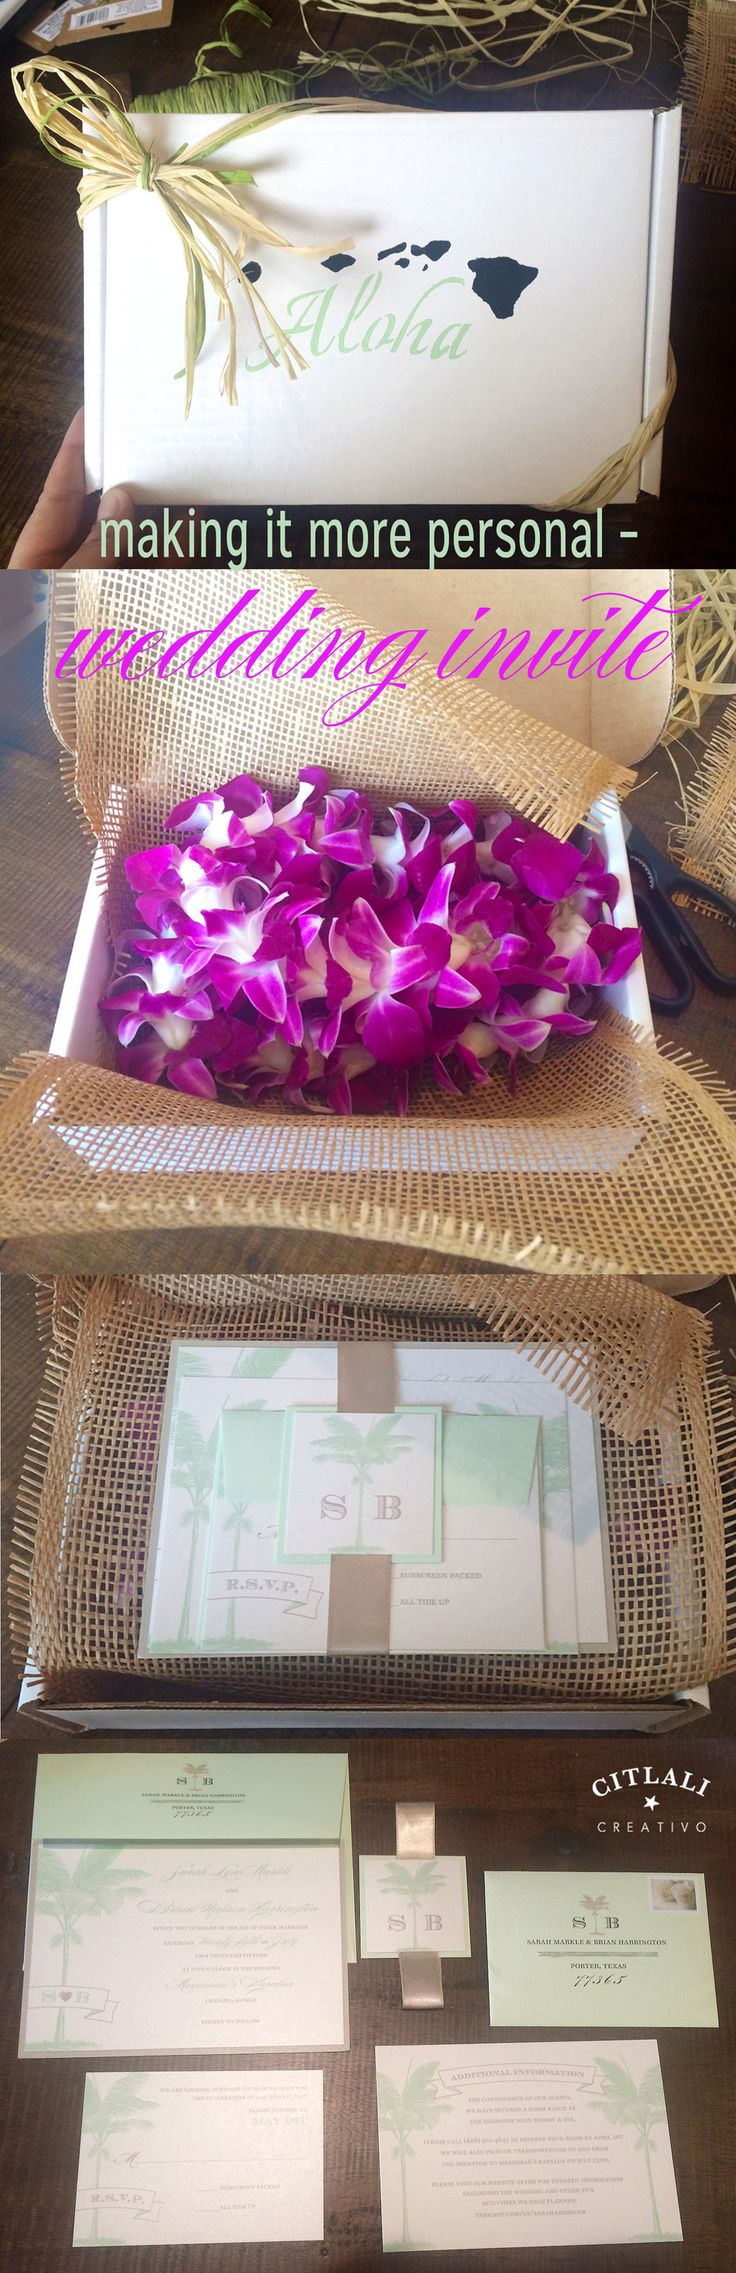 Citlali Creativo Palm Tree Hawaii Destination Wedding Invitations With  Clients Presentation! Adding That Personal Touch